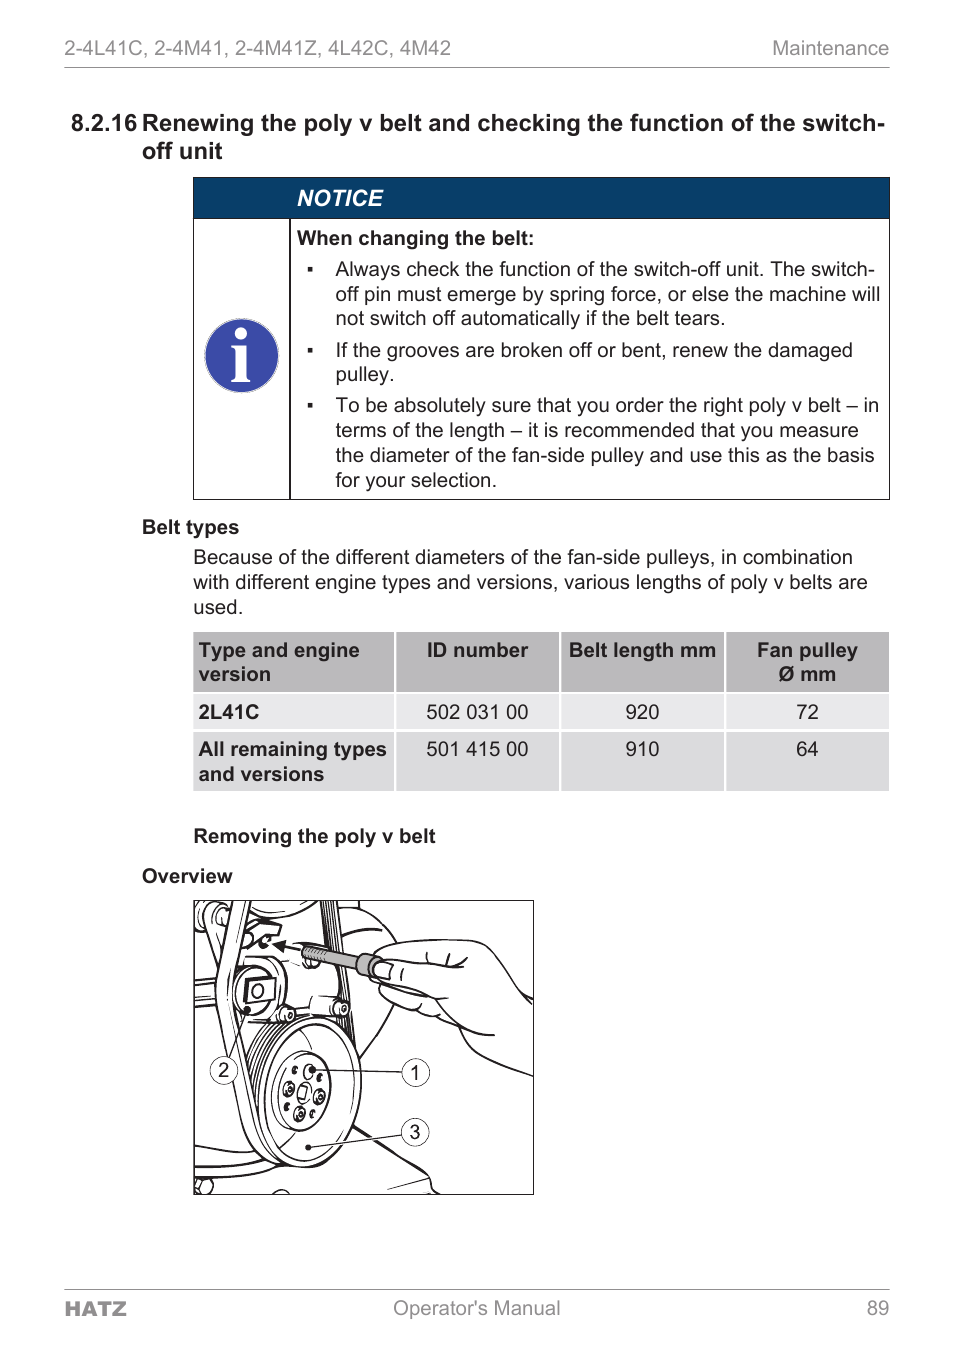 HATZ Diesel 4M42 User Manual | Page 89 / 105 | Also for: 4L42C, 2-4M41Z,  2-4M41, 2-4L41C